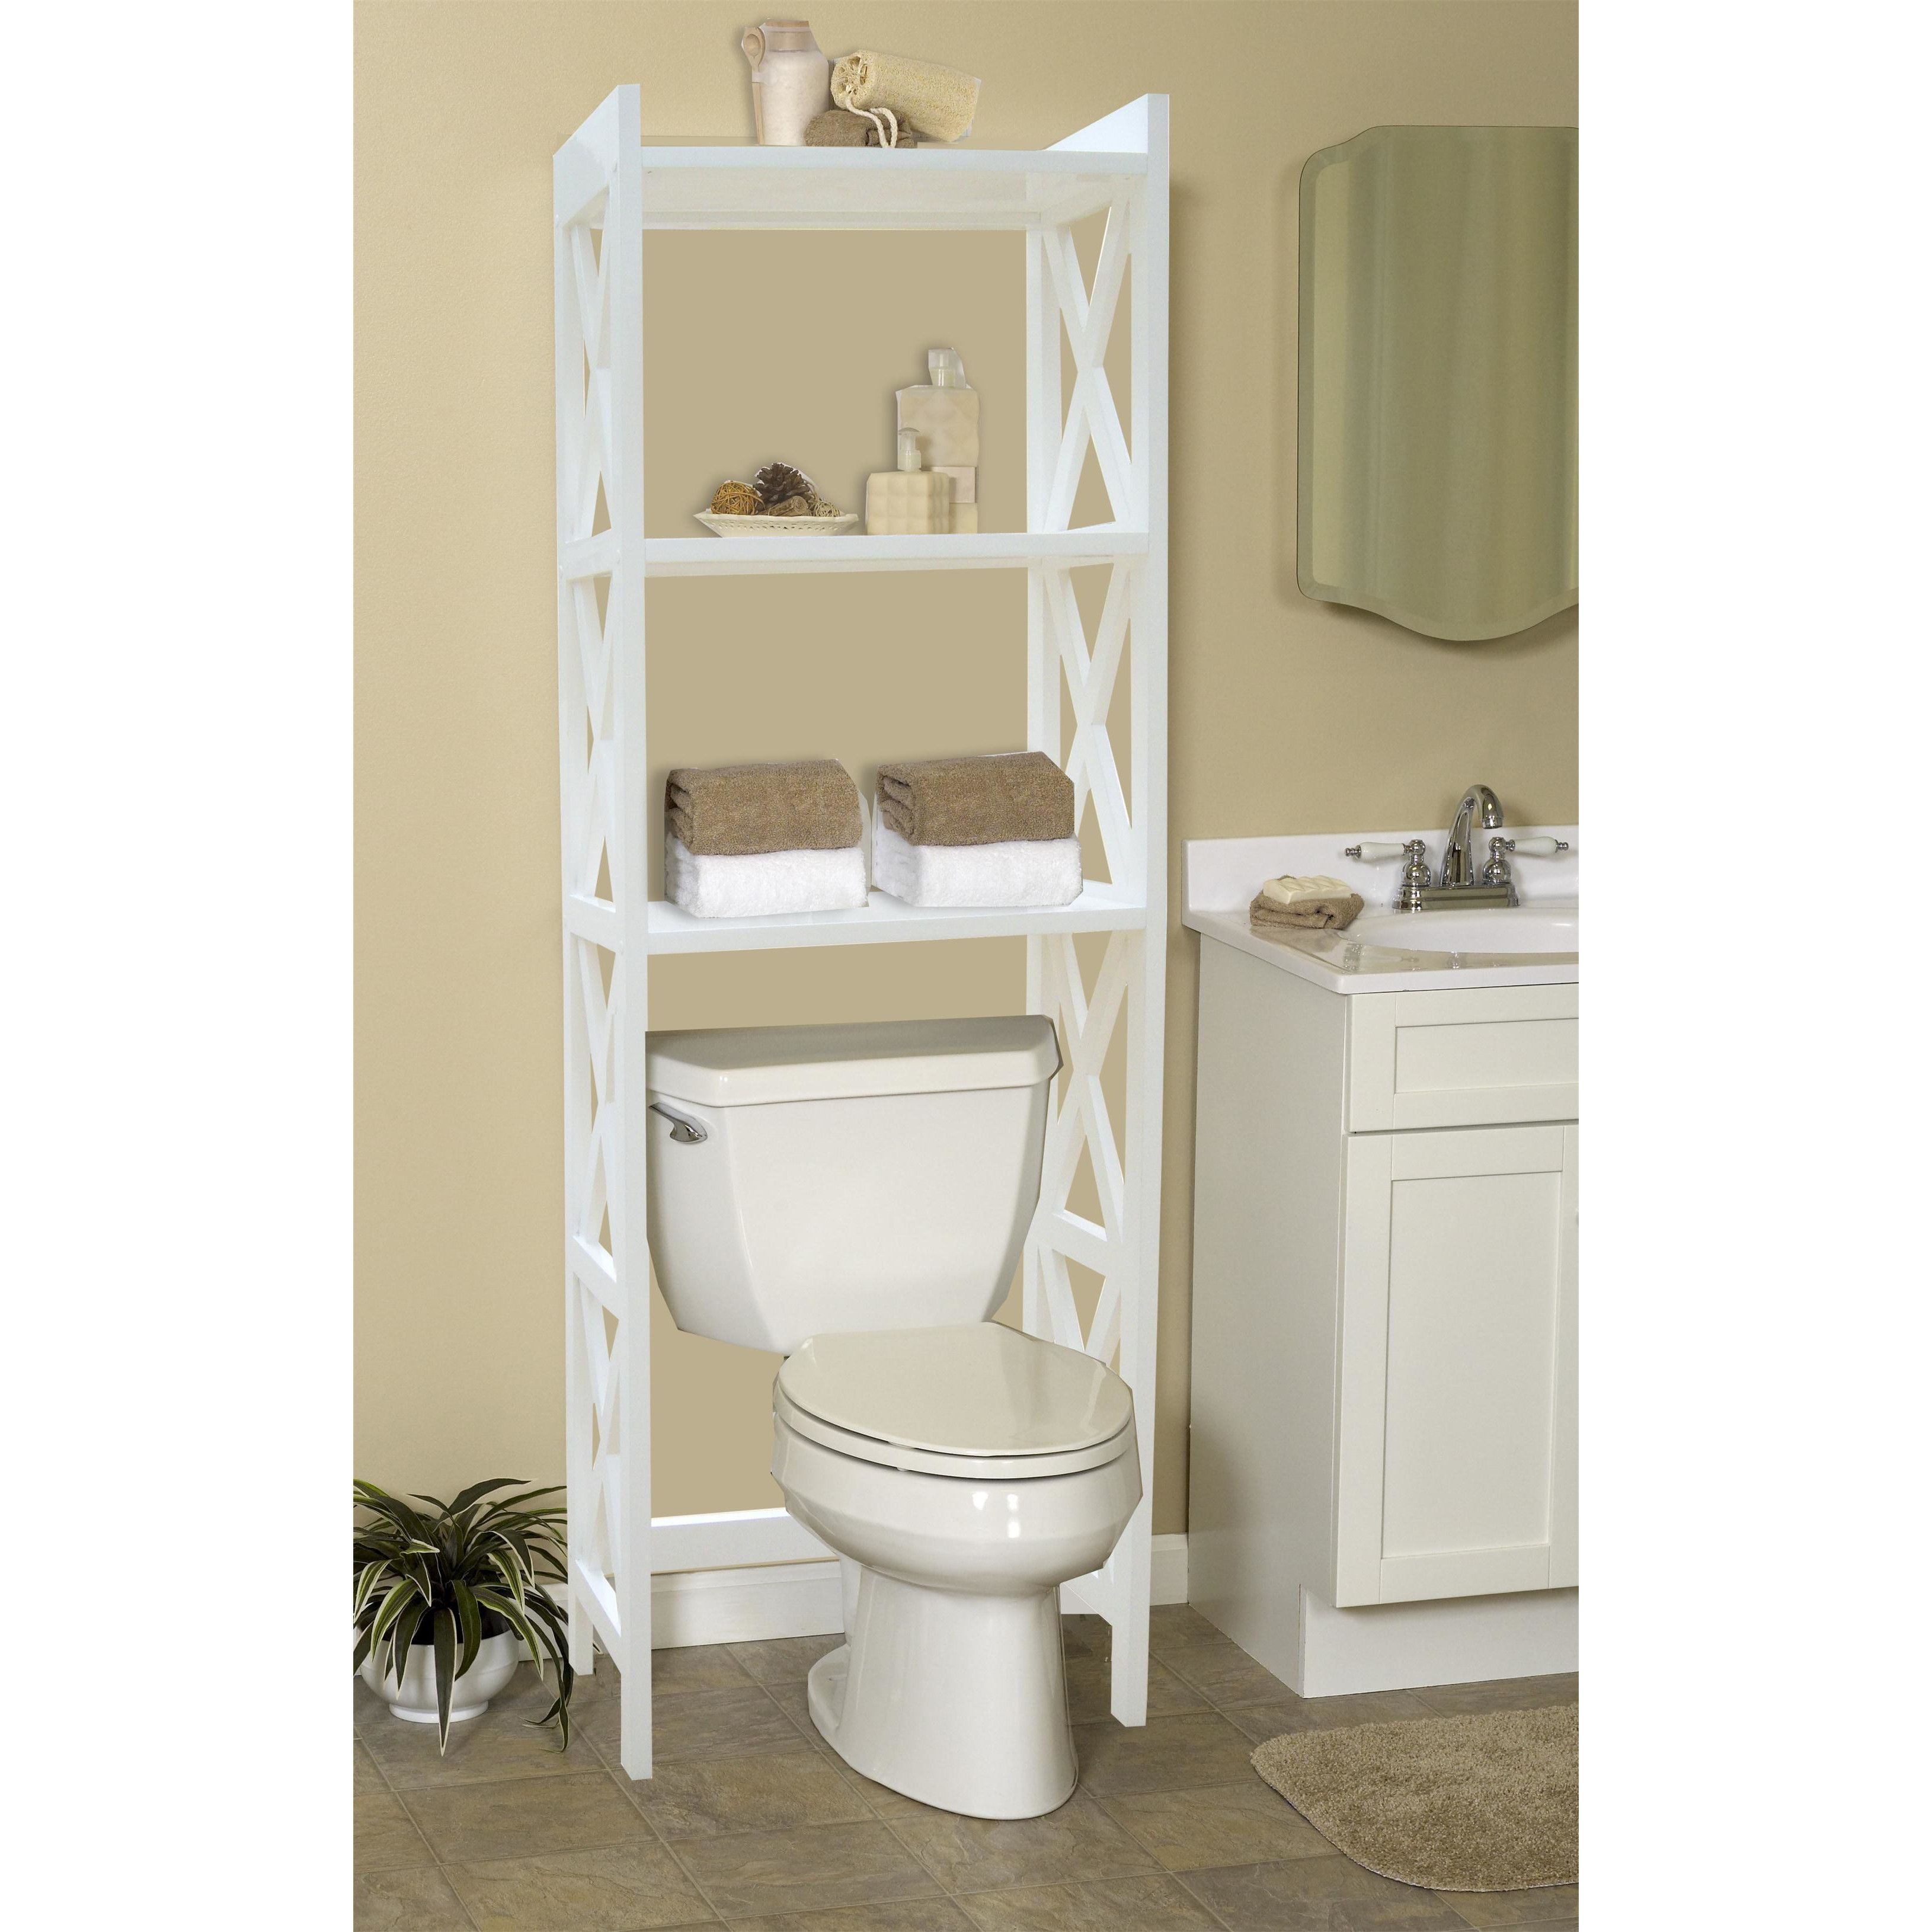 Bathroom Space Saver 24 5 Quot W X 62 Quot H Over The Toilet